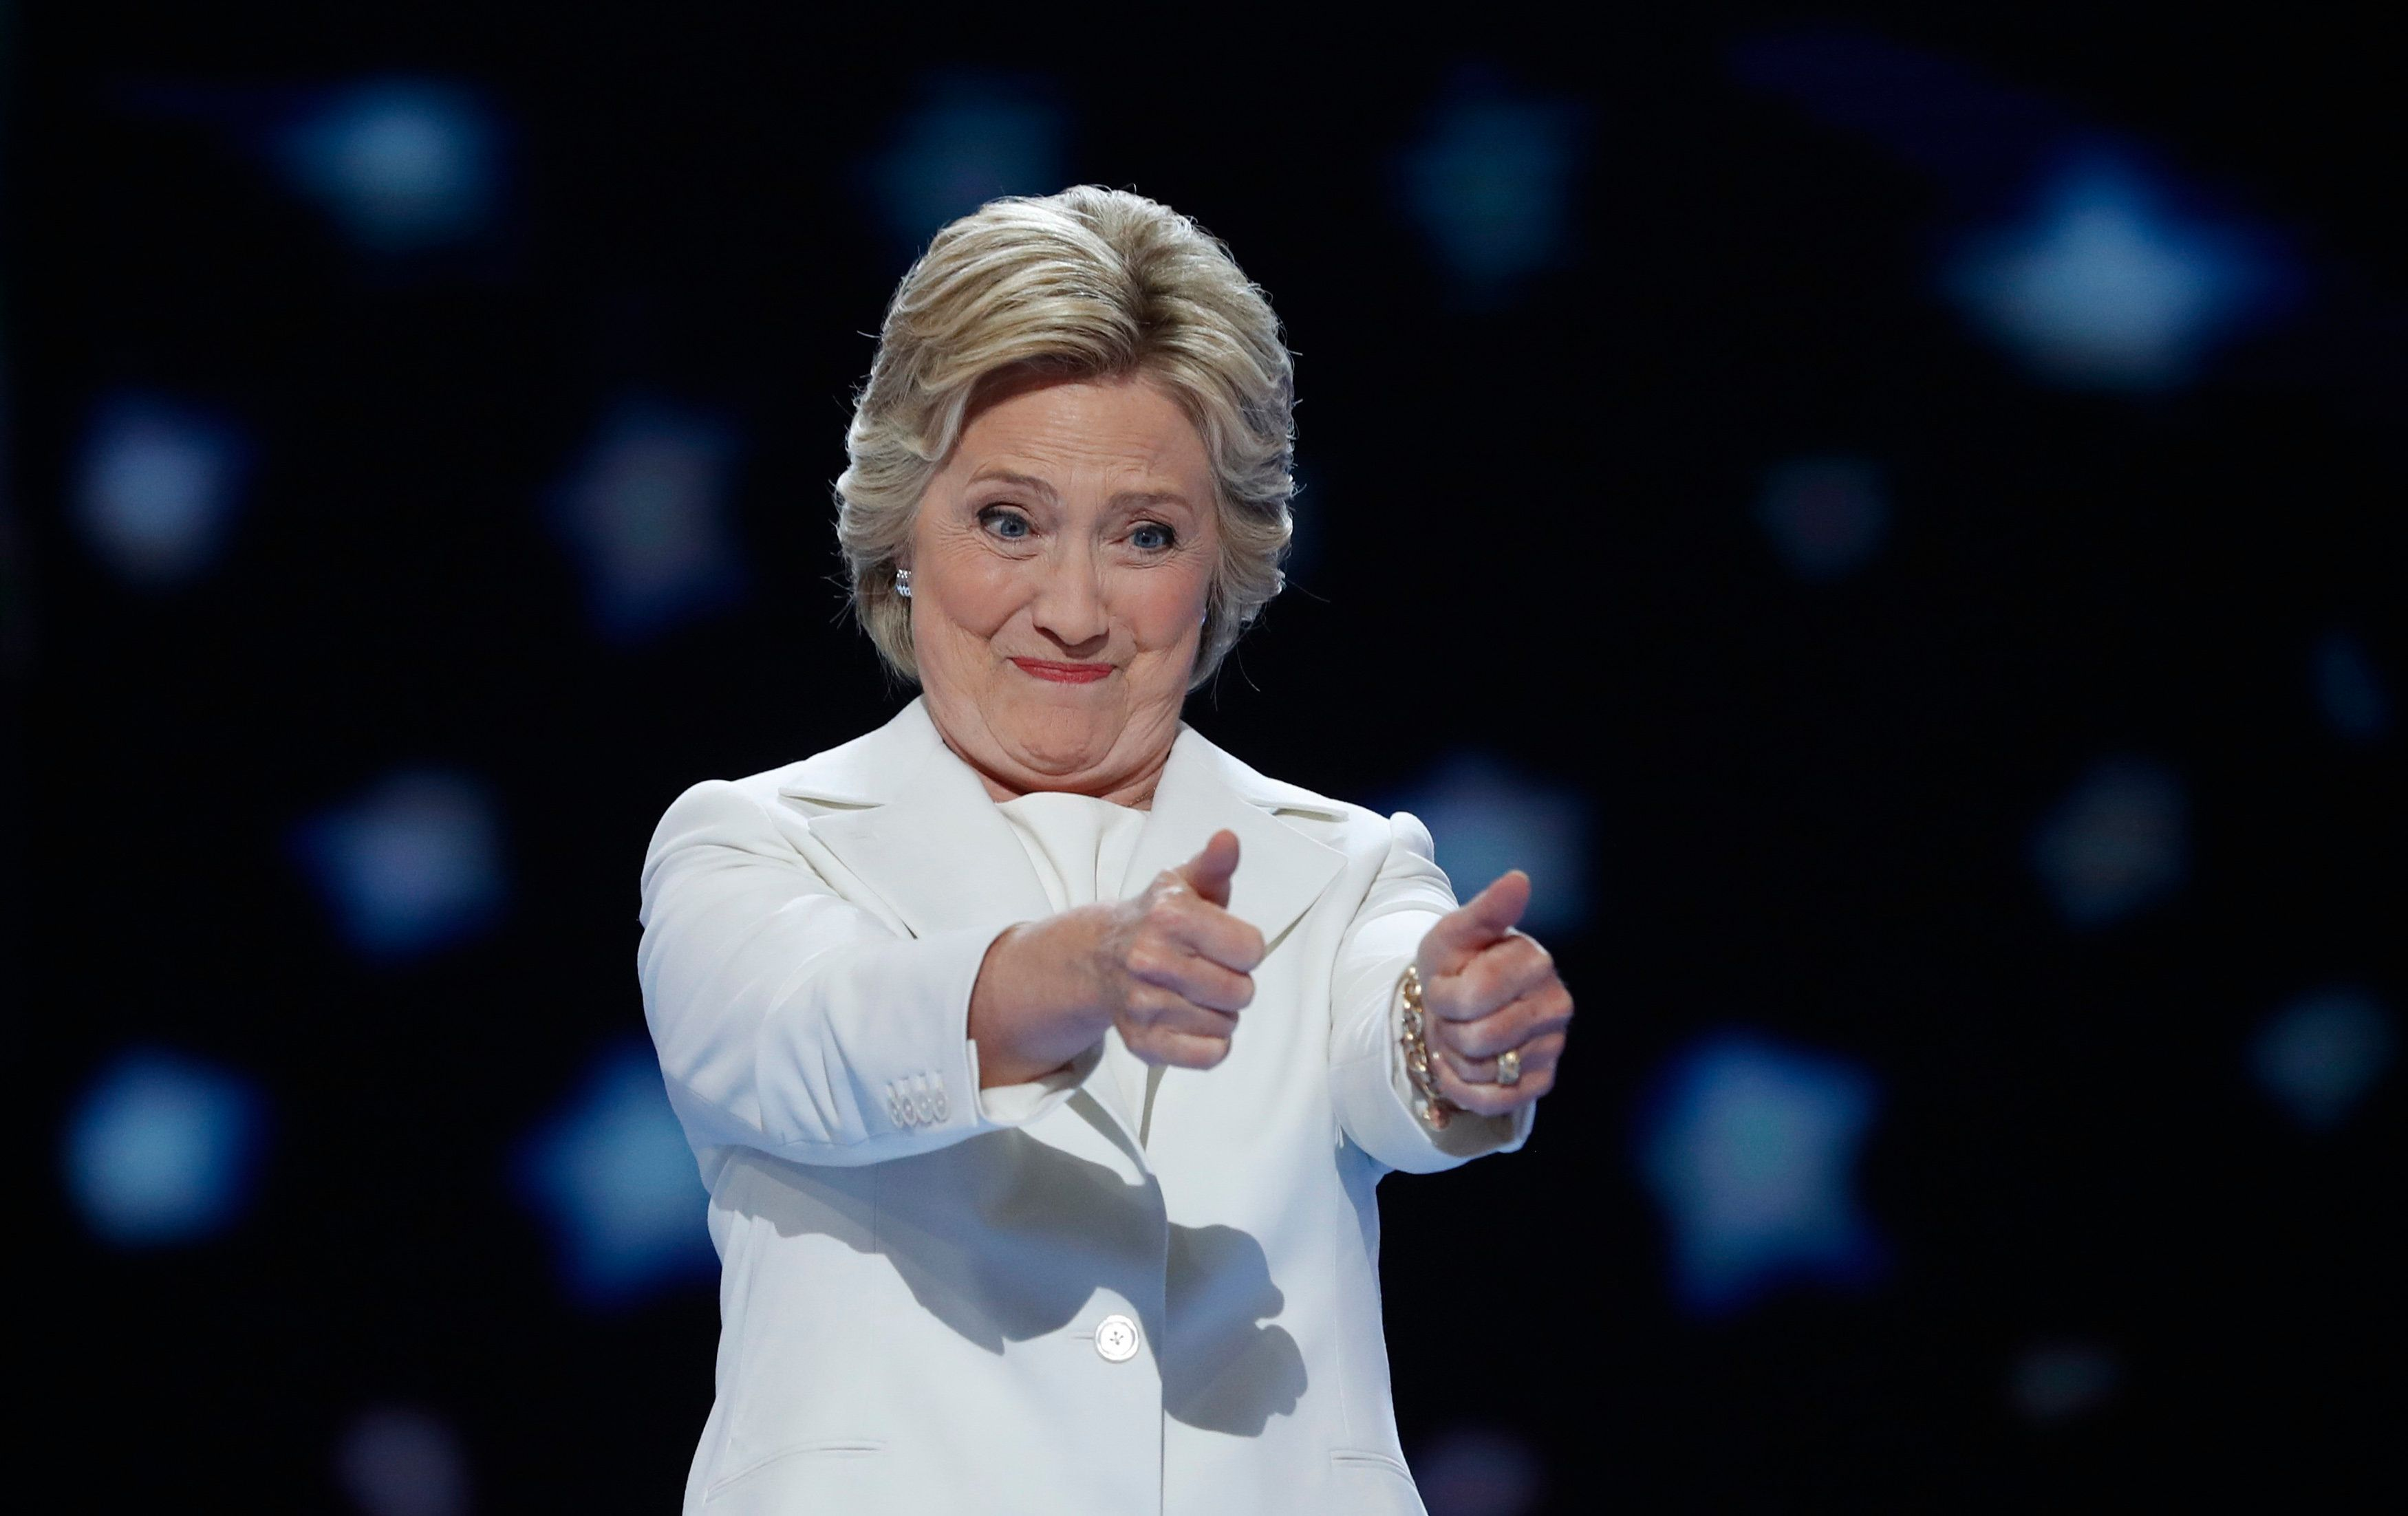 Democratic presidential nominee Hillary Clinton gives two thumbs up as she arrives to accept the nomination on the fourth and final night at the Democratic National Convention in Philadelphia, Pennsylvania, U.S. July 28, 2016. REUTERS/Mark Kauzlarich